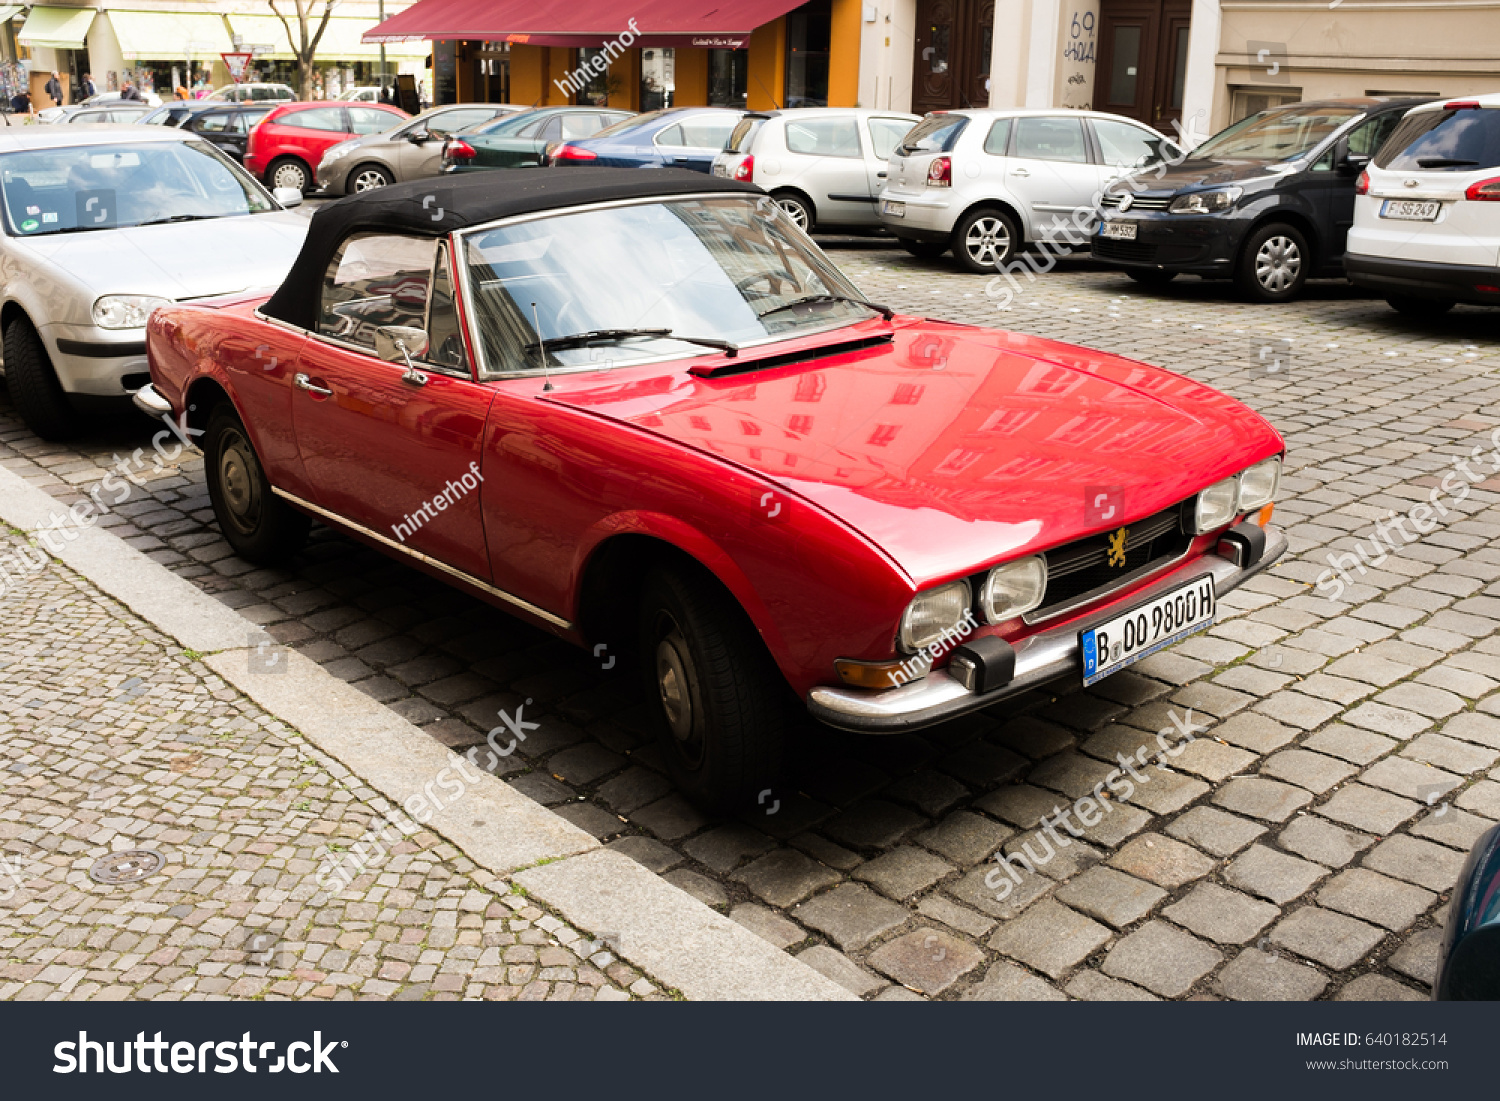 Berlin May 3th Vintage Red Peugeot Stock Photo Edit Now 640182514